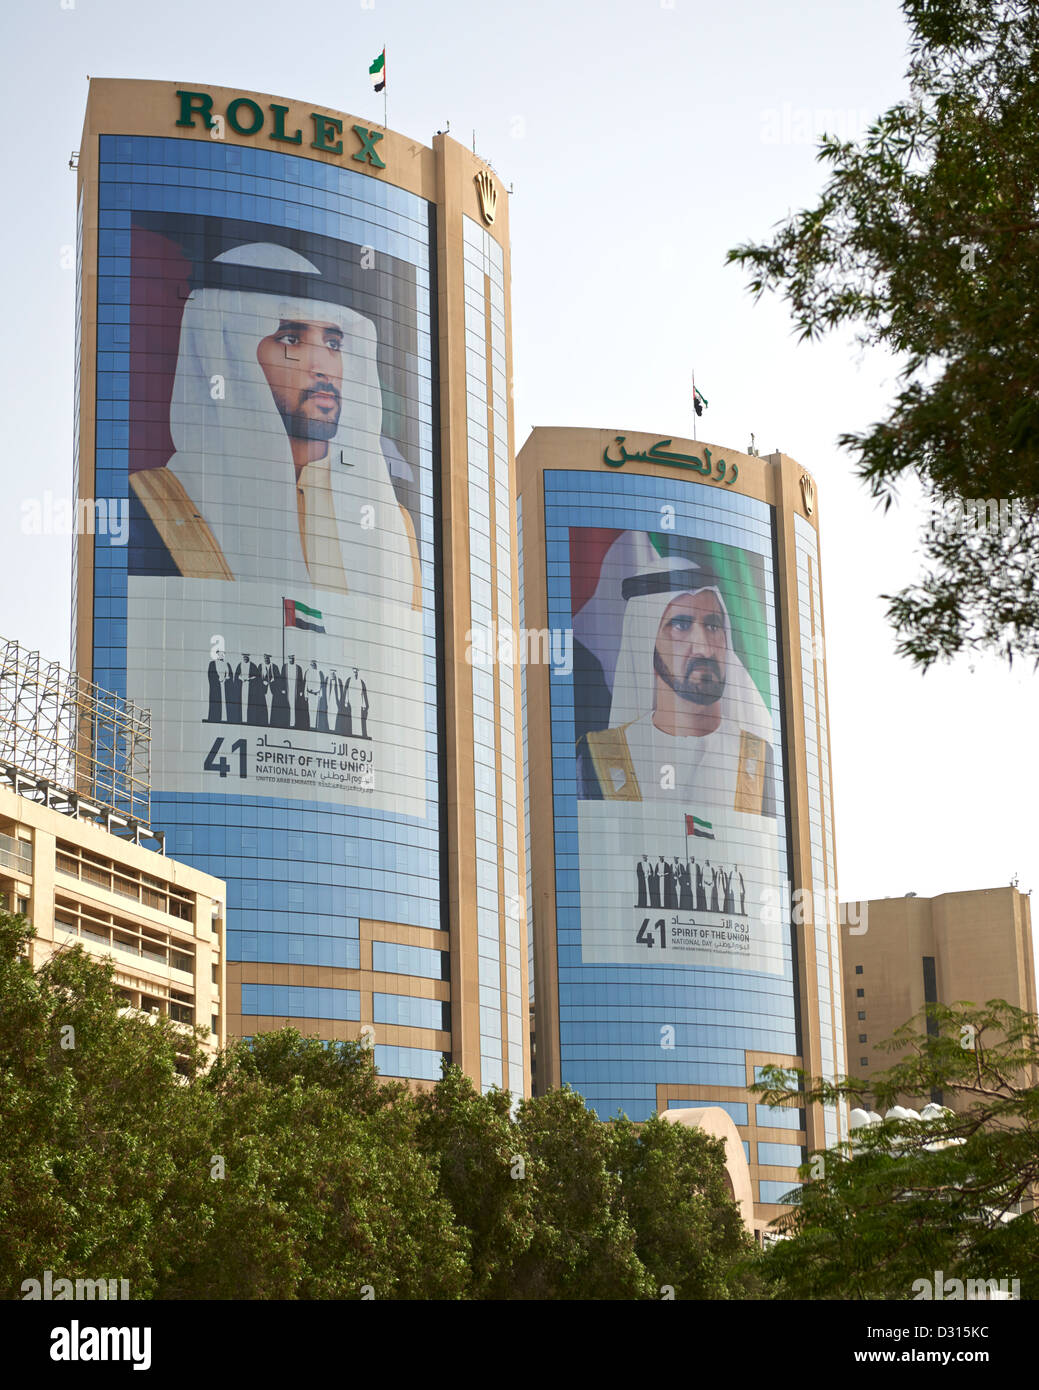 Giant billboards on Rolex buildings for Dubai National Day - Stock Image